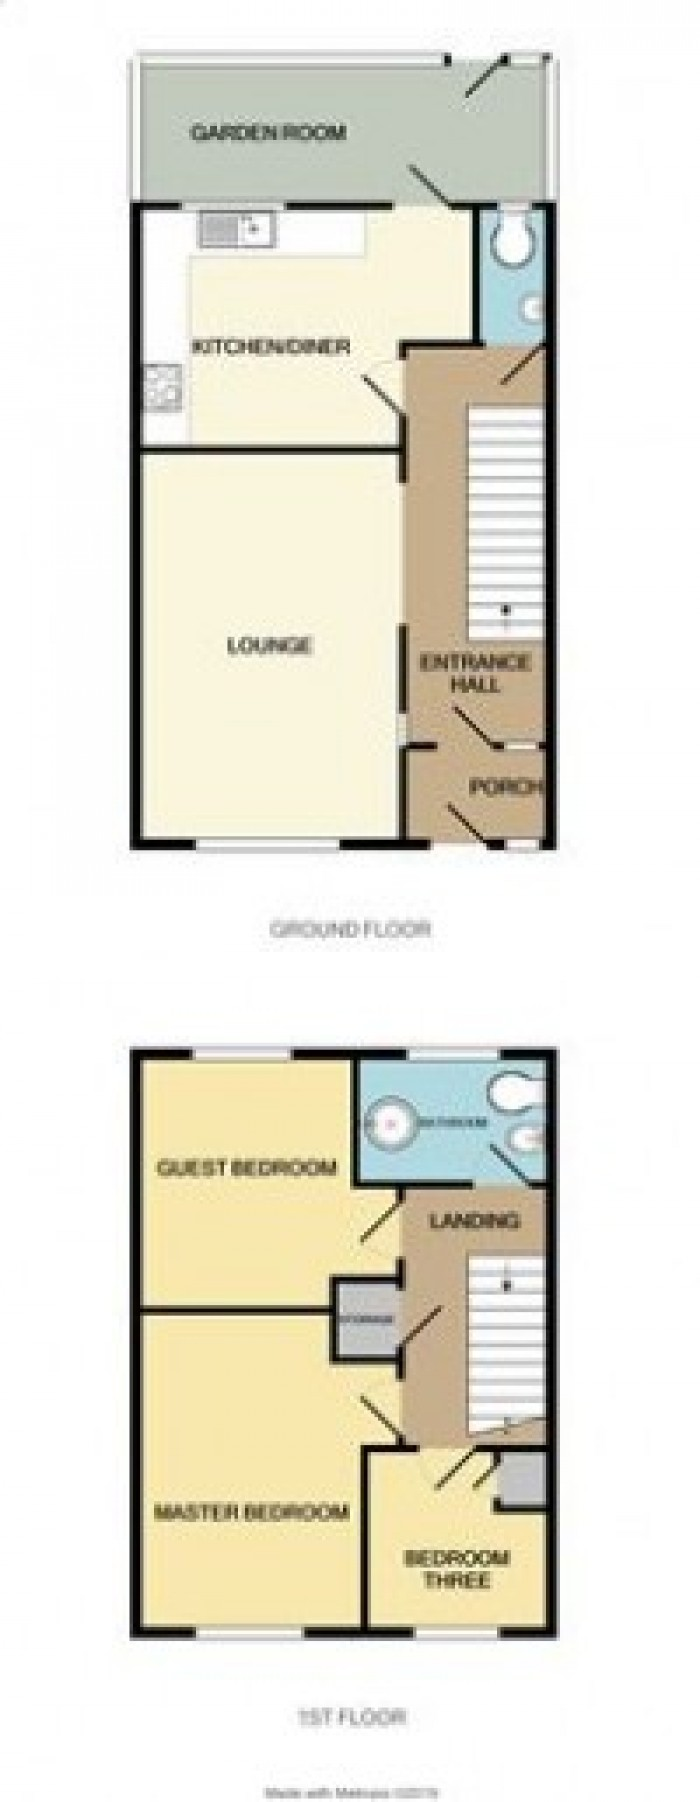 Floorplans For Masons Way, Solihull